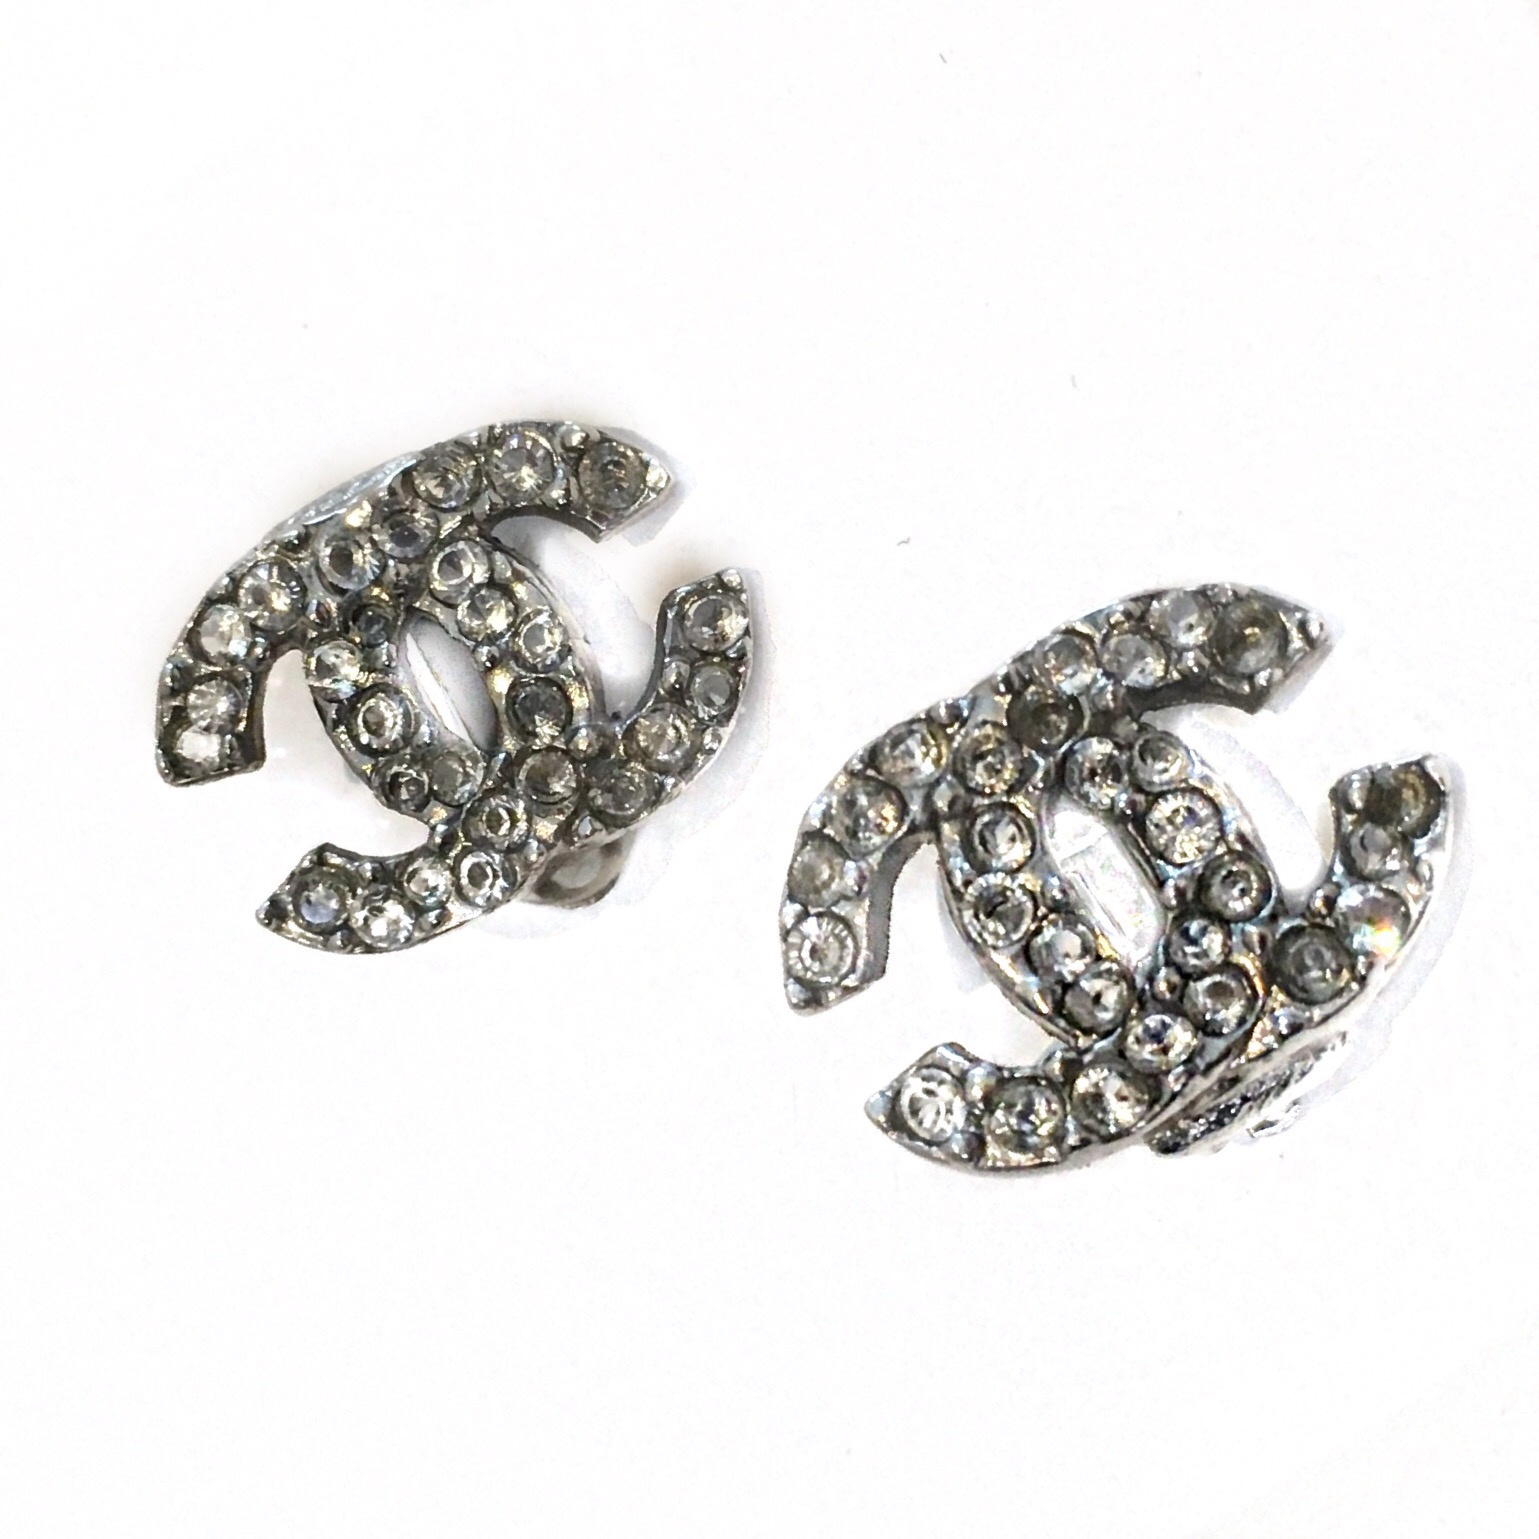 Chanel-Earrings_116299A.jpg